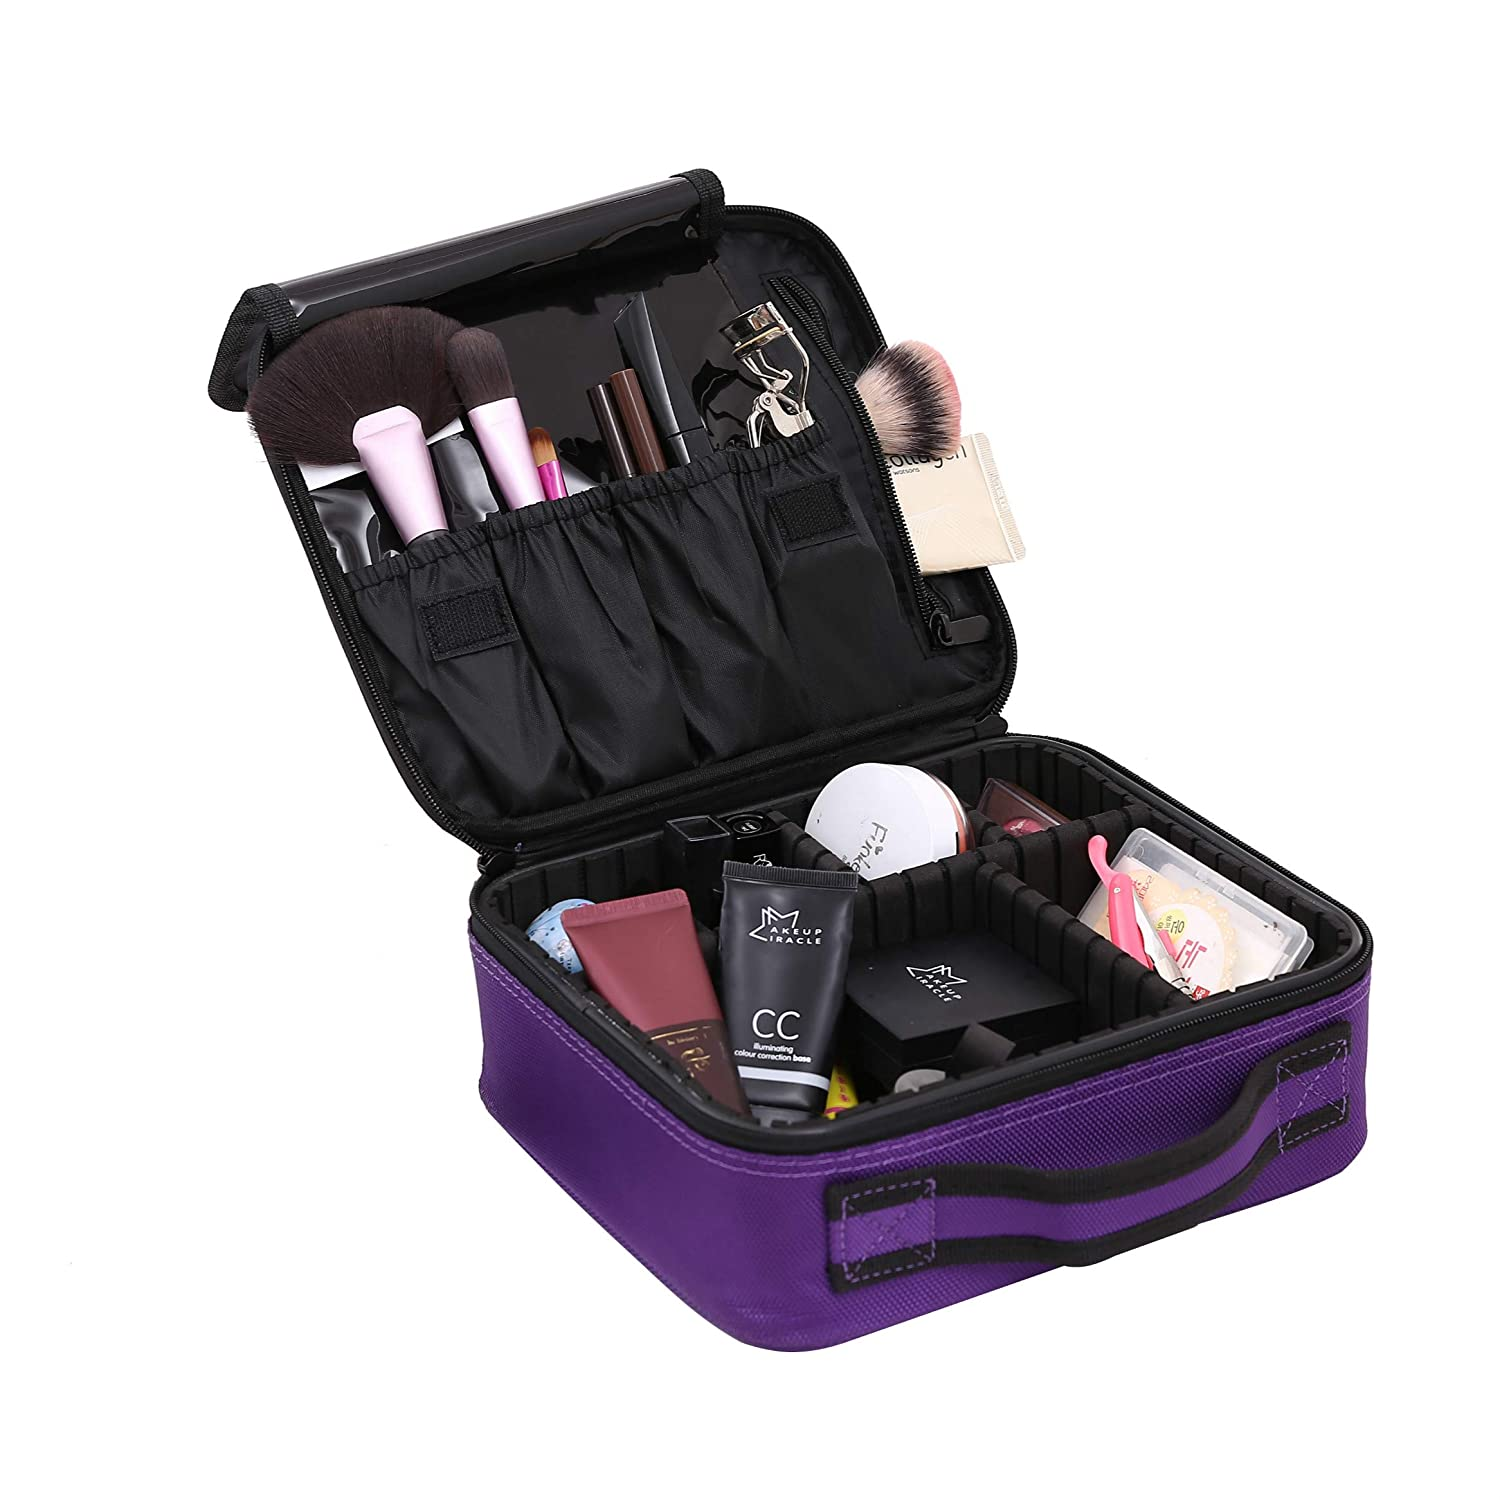 Makeup cosmetic Storage Case, makeup organizer portable Travel Makeup Bag Makeup Case Organizer Makeup Organizer Bag with Adjustable Dividers Cosmetic Bag Toiletry Organizer Tool (purple) YYHHQ-home